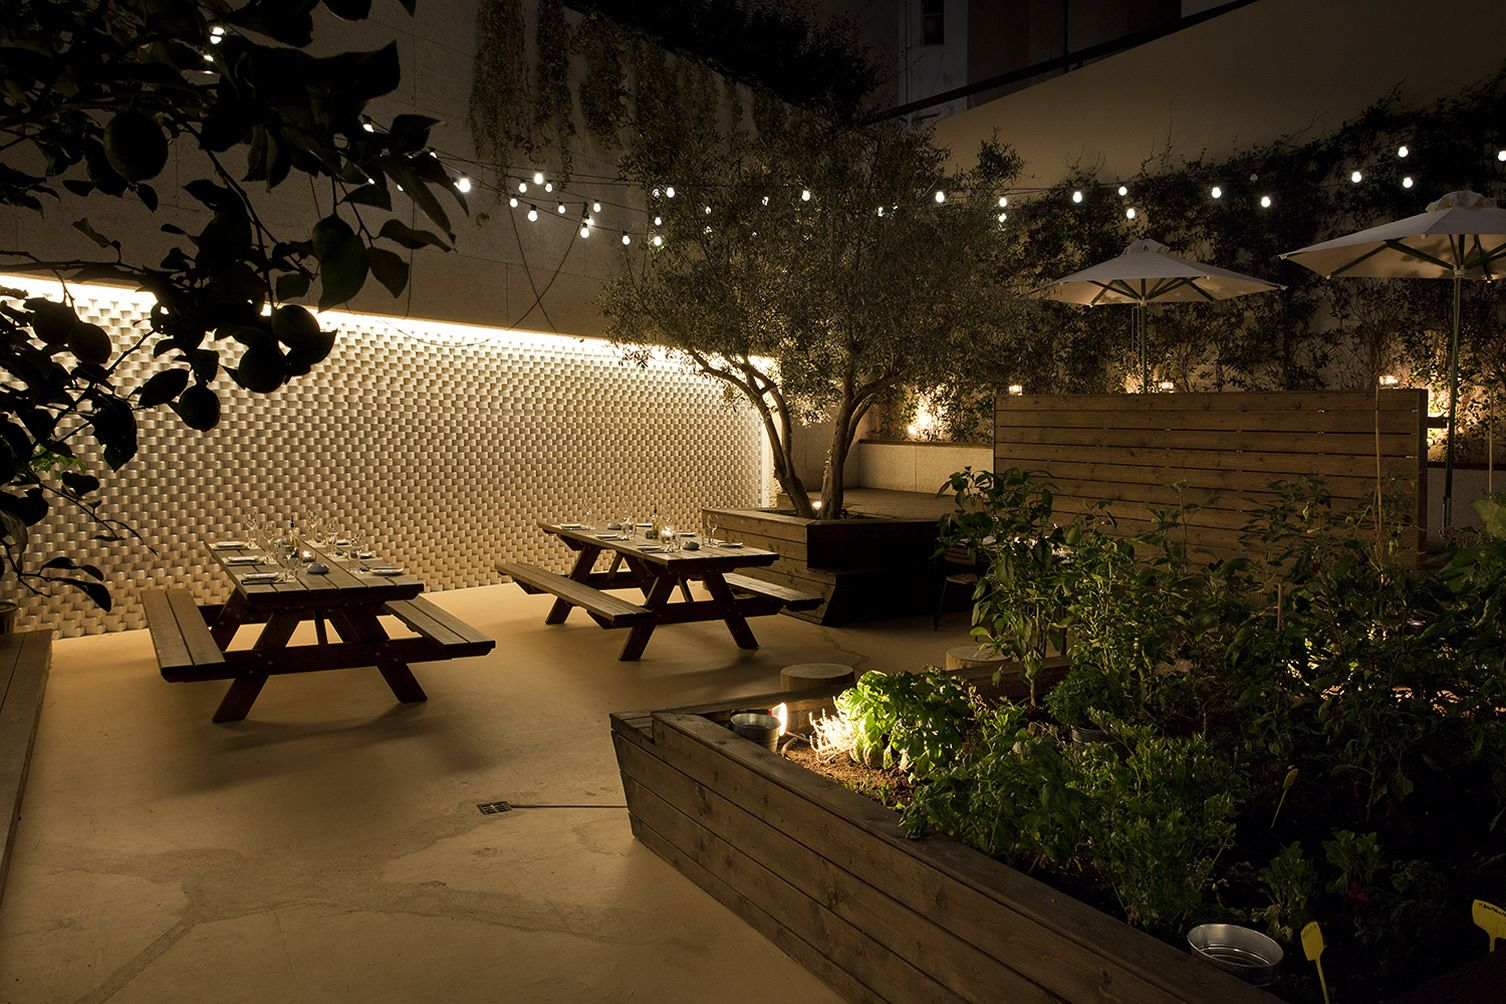 Soak up the sun amid the aroma of fruit and vegetables at ...